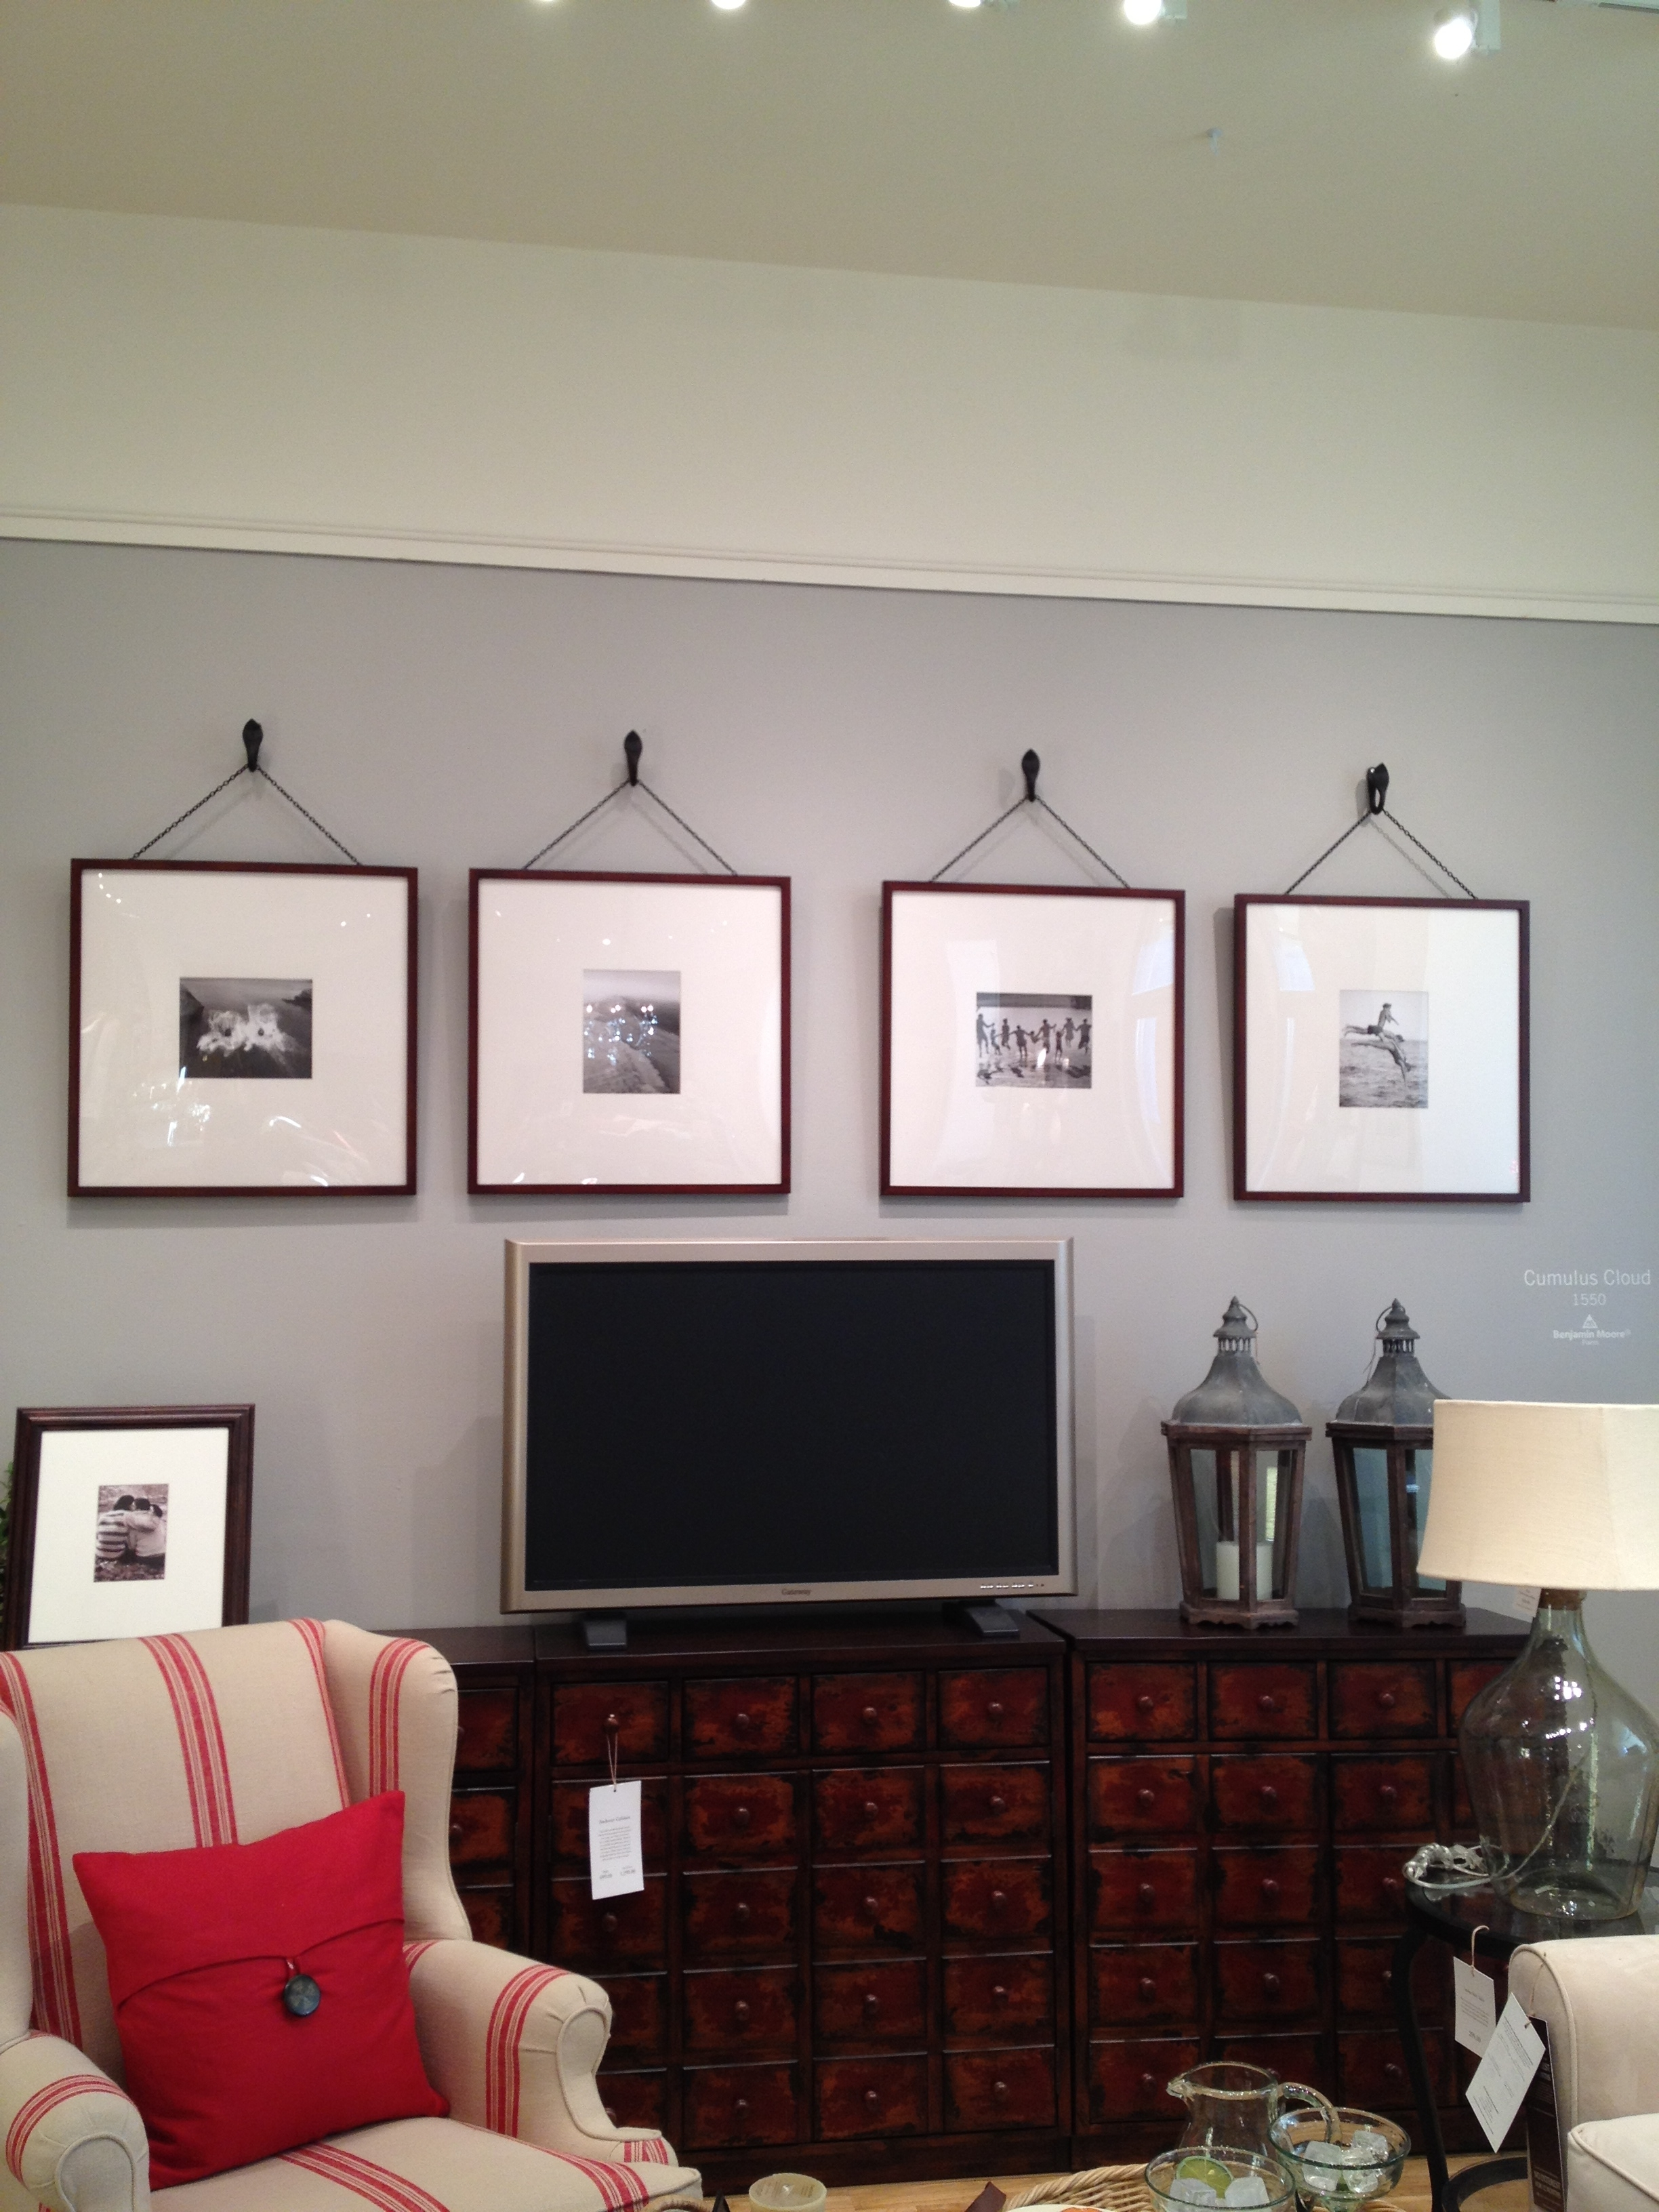 Pottery Barn Oversized Picture Frames Maybe Over The Tv In The Regarding 2017 Wall Accents Behind Tv (View 12 of 15)